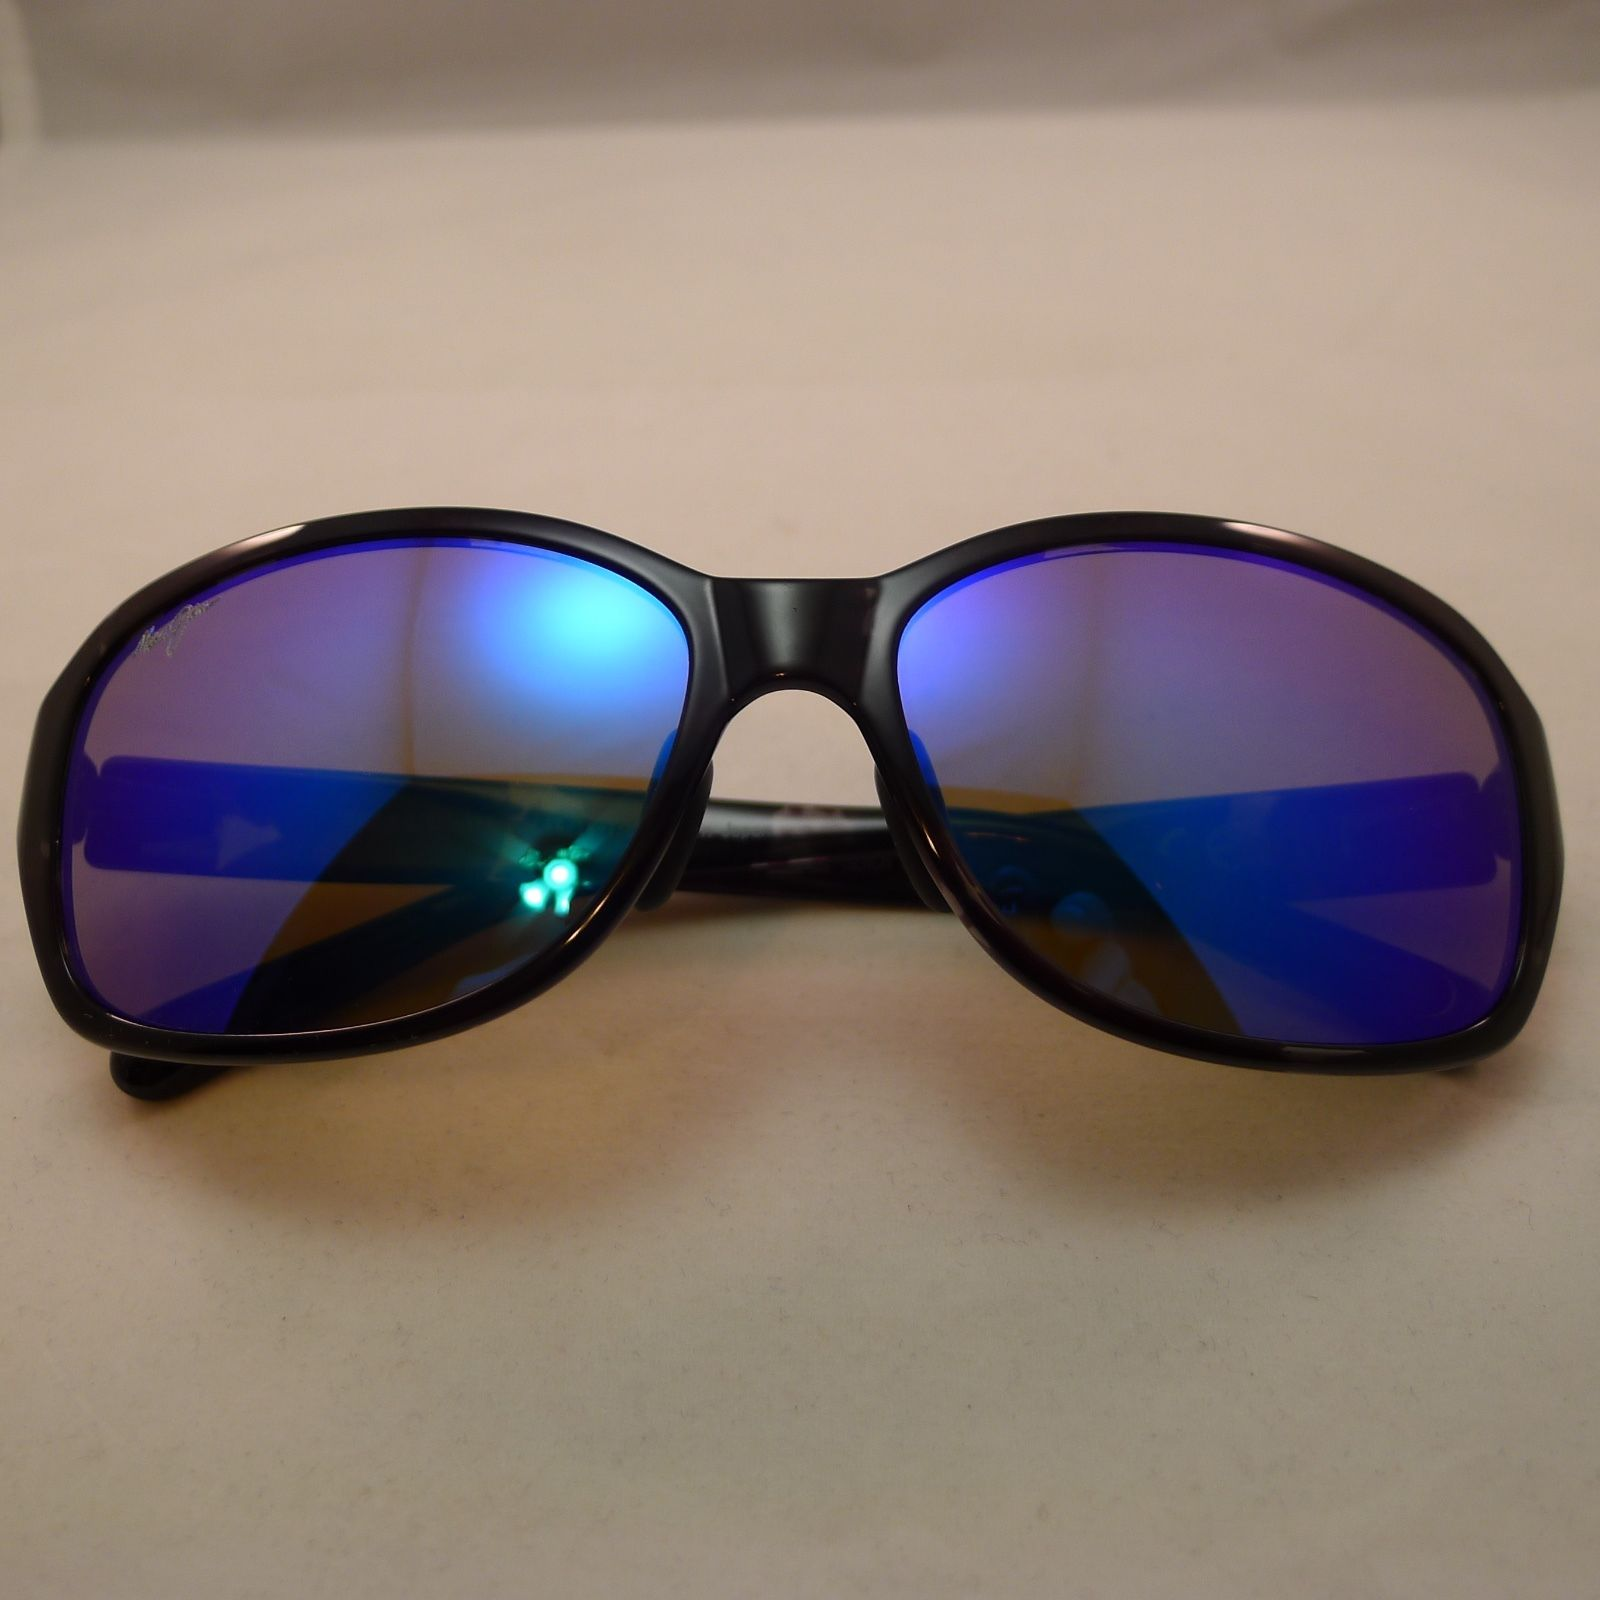 72706a2b60 New Maui Jim Sunglasses Retail $398.00 Made In Japan | Property Room